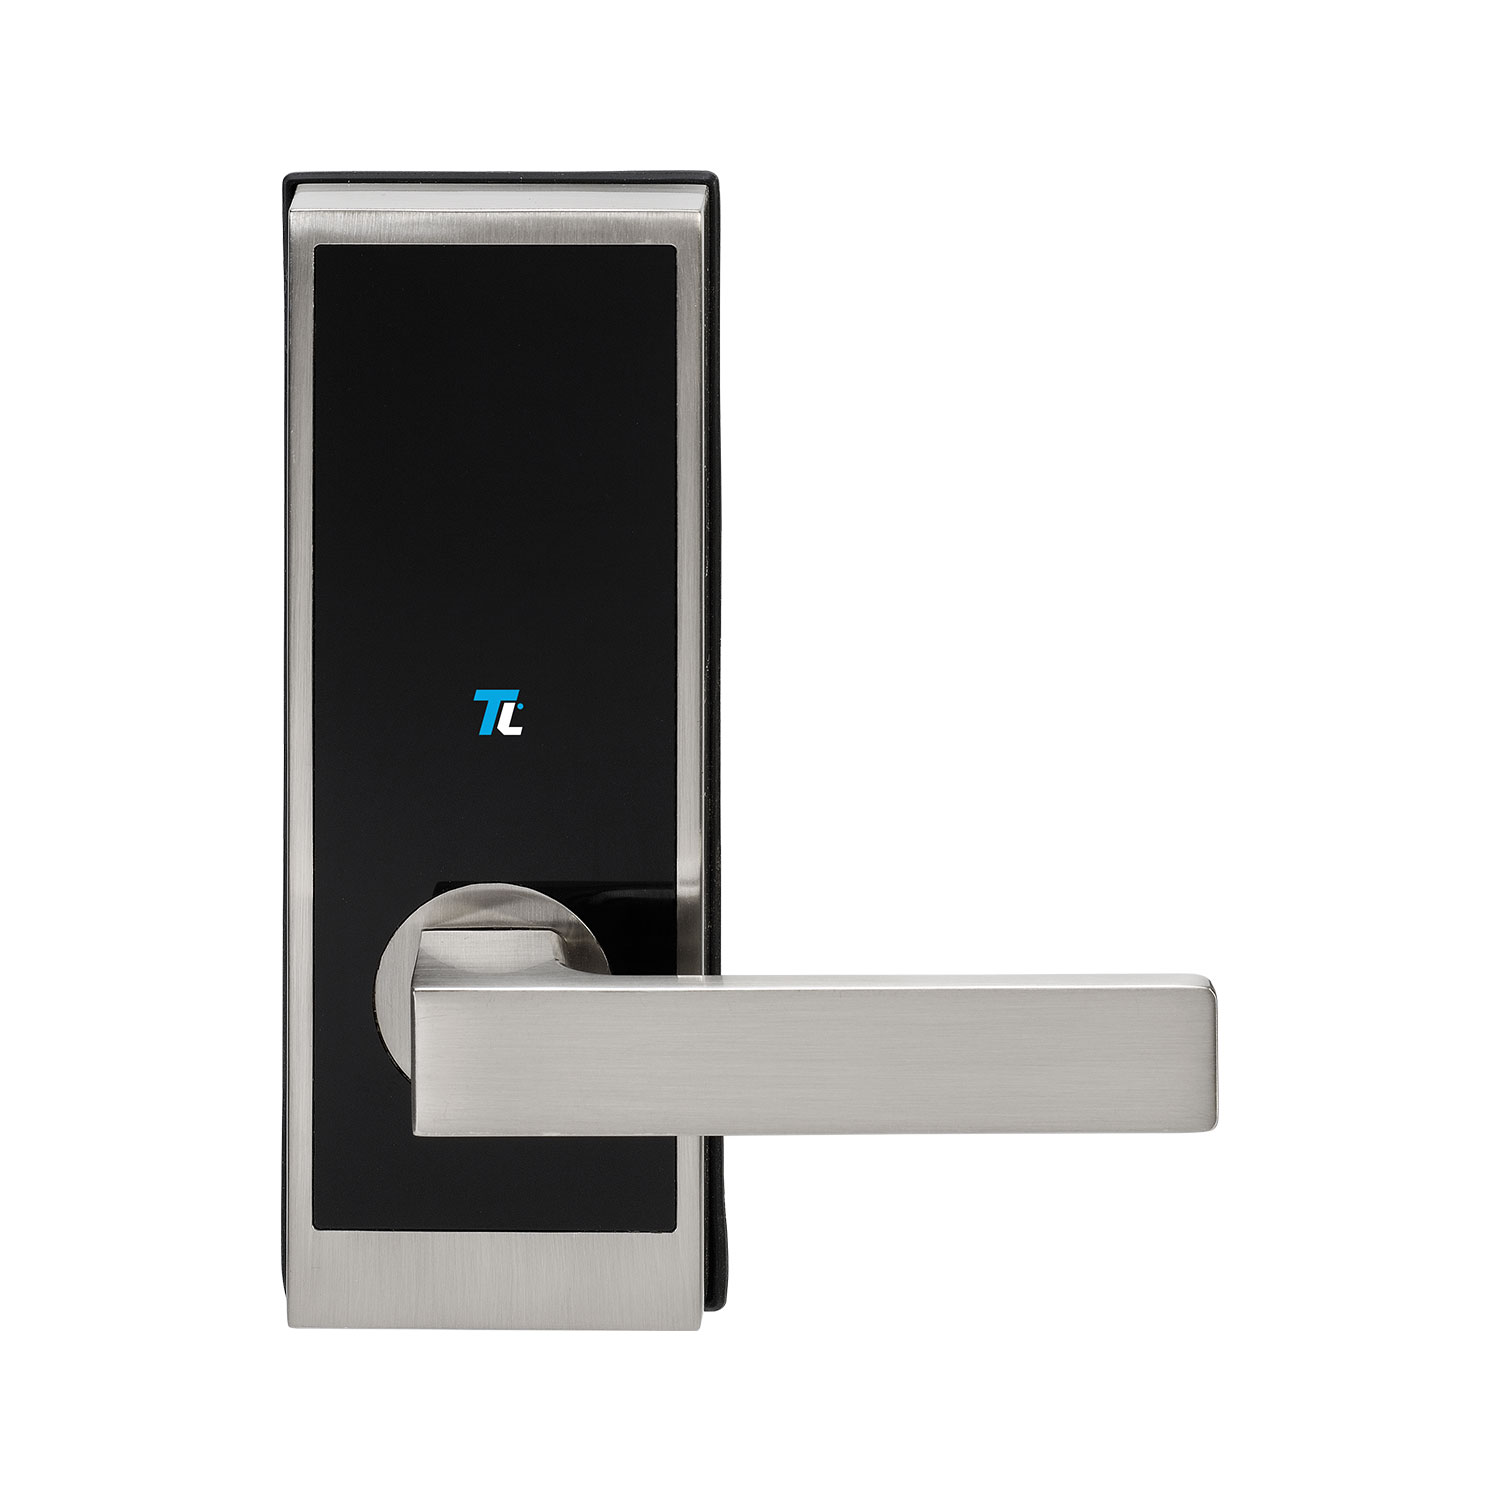 turbolock tl100 smart keyless entry home security. Black Bedroom Furniture Sets. Home Design Ideas